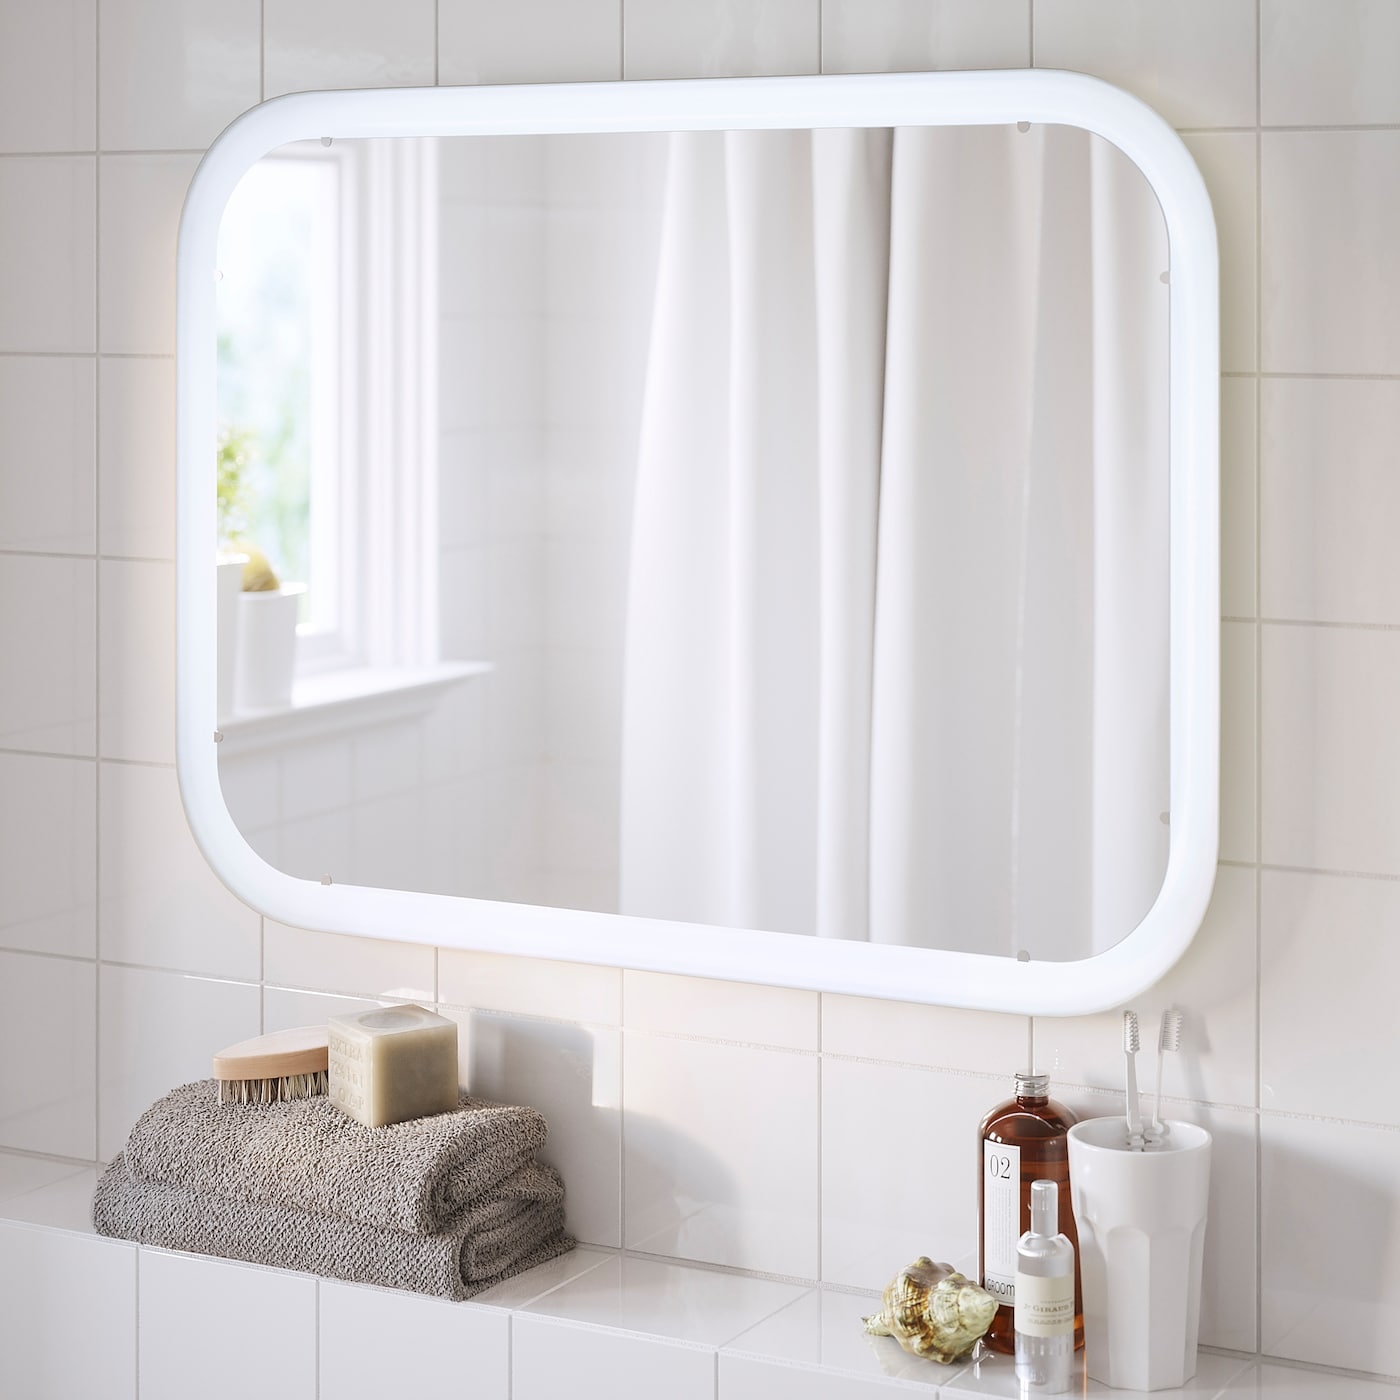 Storjorm Mirror With Built In Light White 31 1 2x23 5 8 Ikea